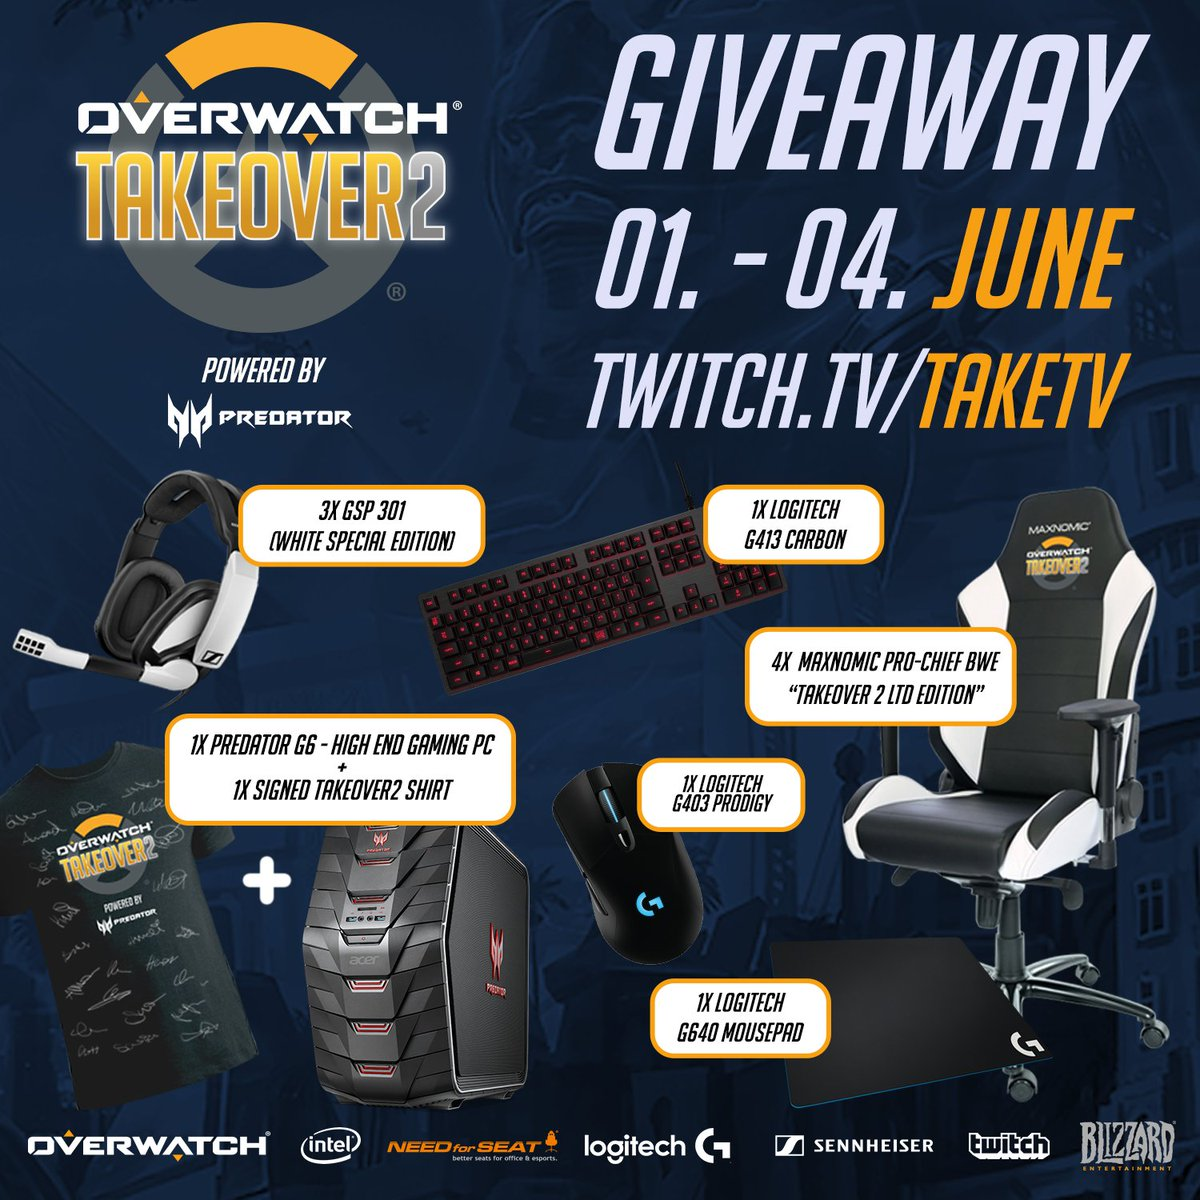 Make sure to participate in the awesome #OWTaKeOver 2 giveaway! https://t.co/RaDi1GnxMv https://t.co/KCh5vC6Hcp